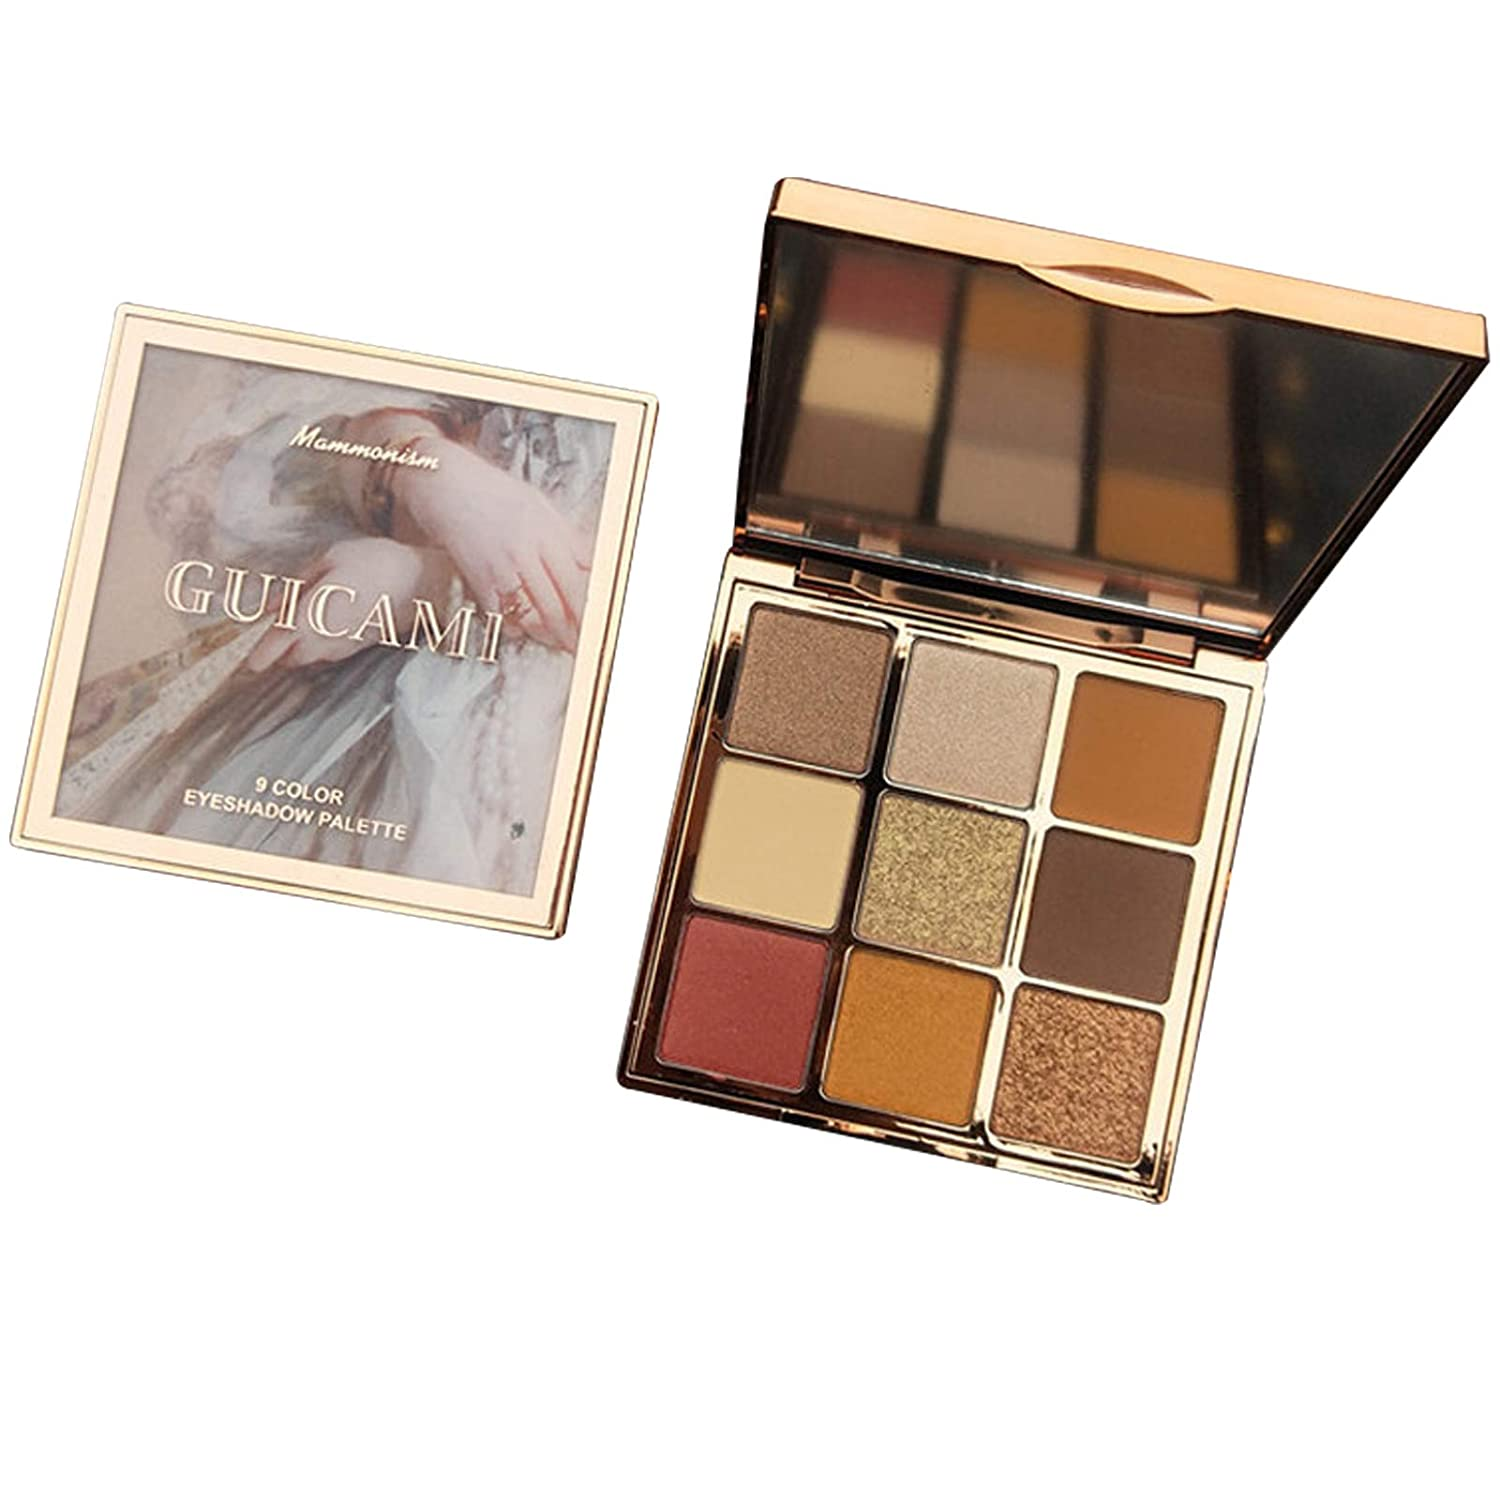 Eyeshadow Palette,Highly Pigmented Eye Makeup,Matte And Bright Vibrant Colors Cosmetics Set (nude)